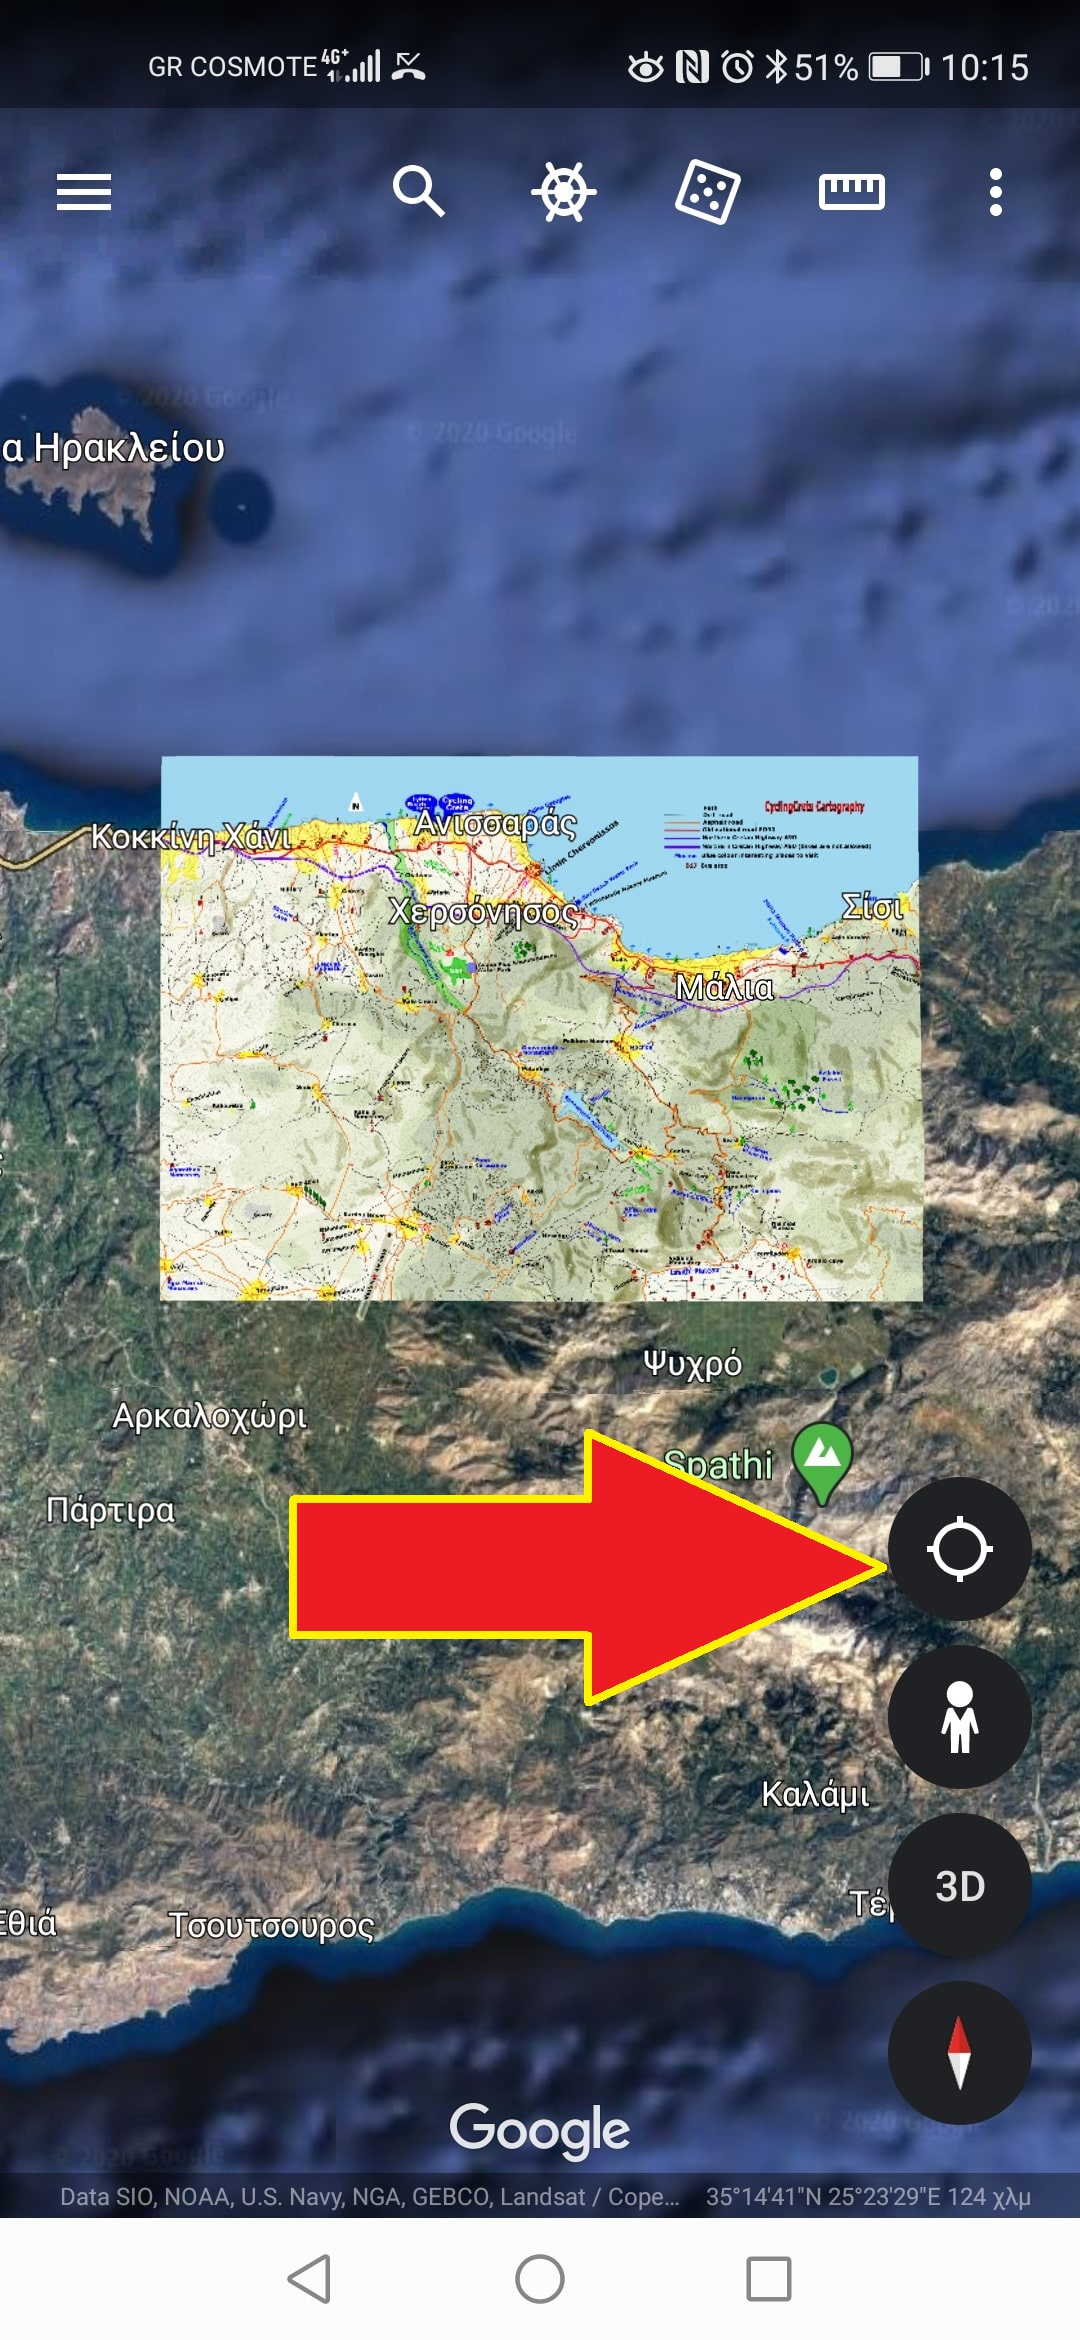 how to use a cyclingcreta map of Crete with google earth 8